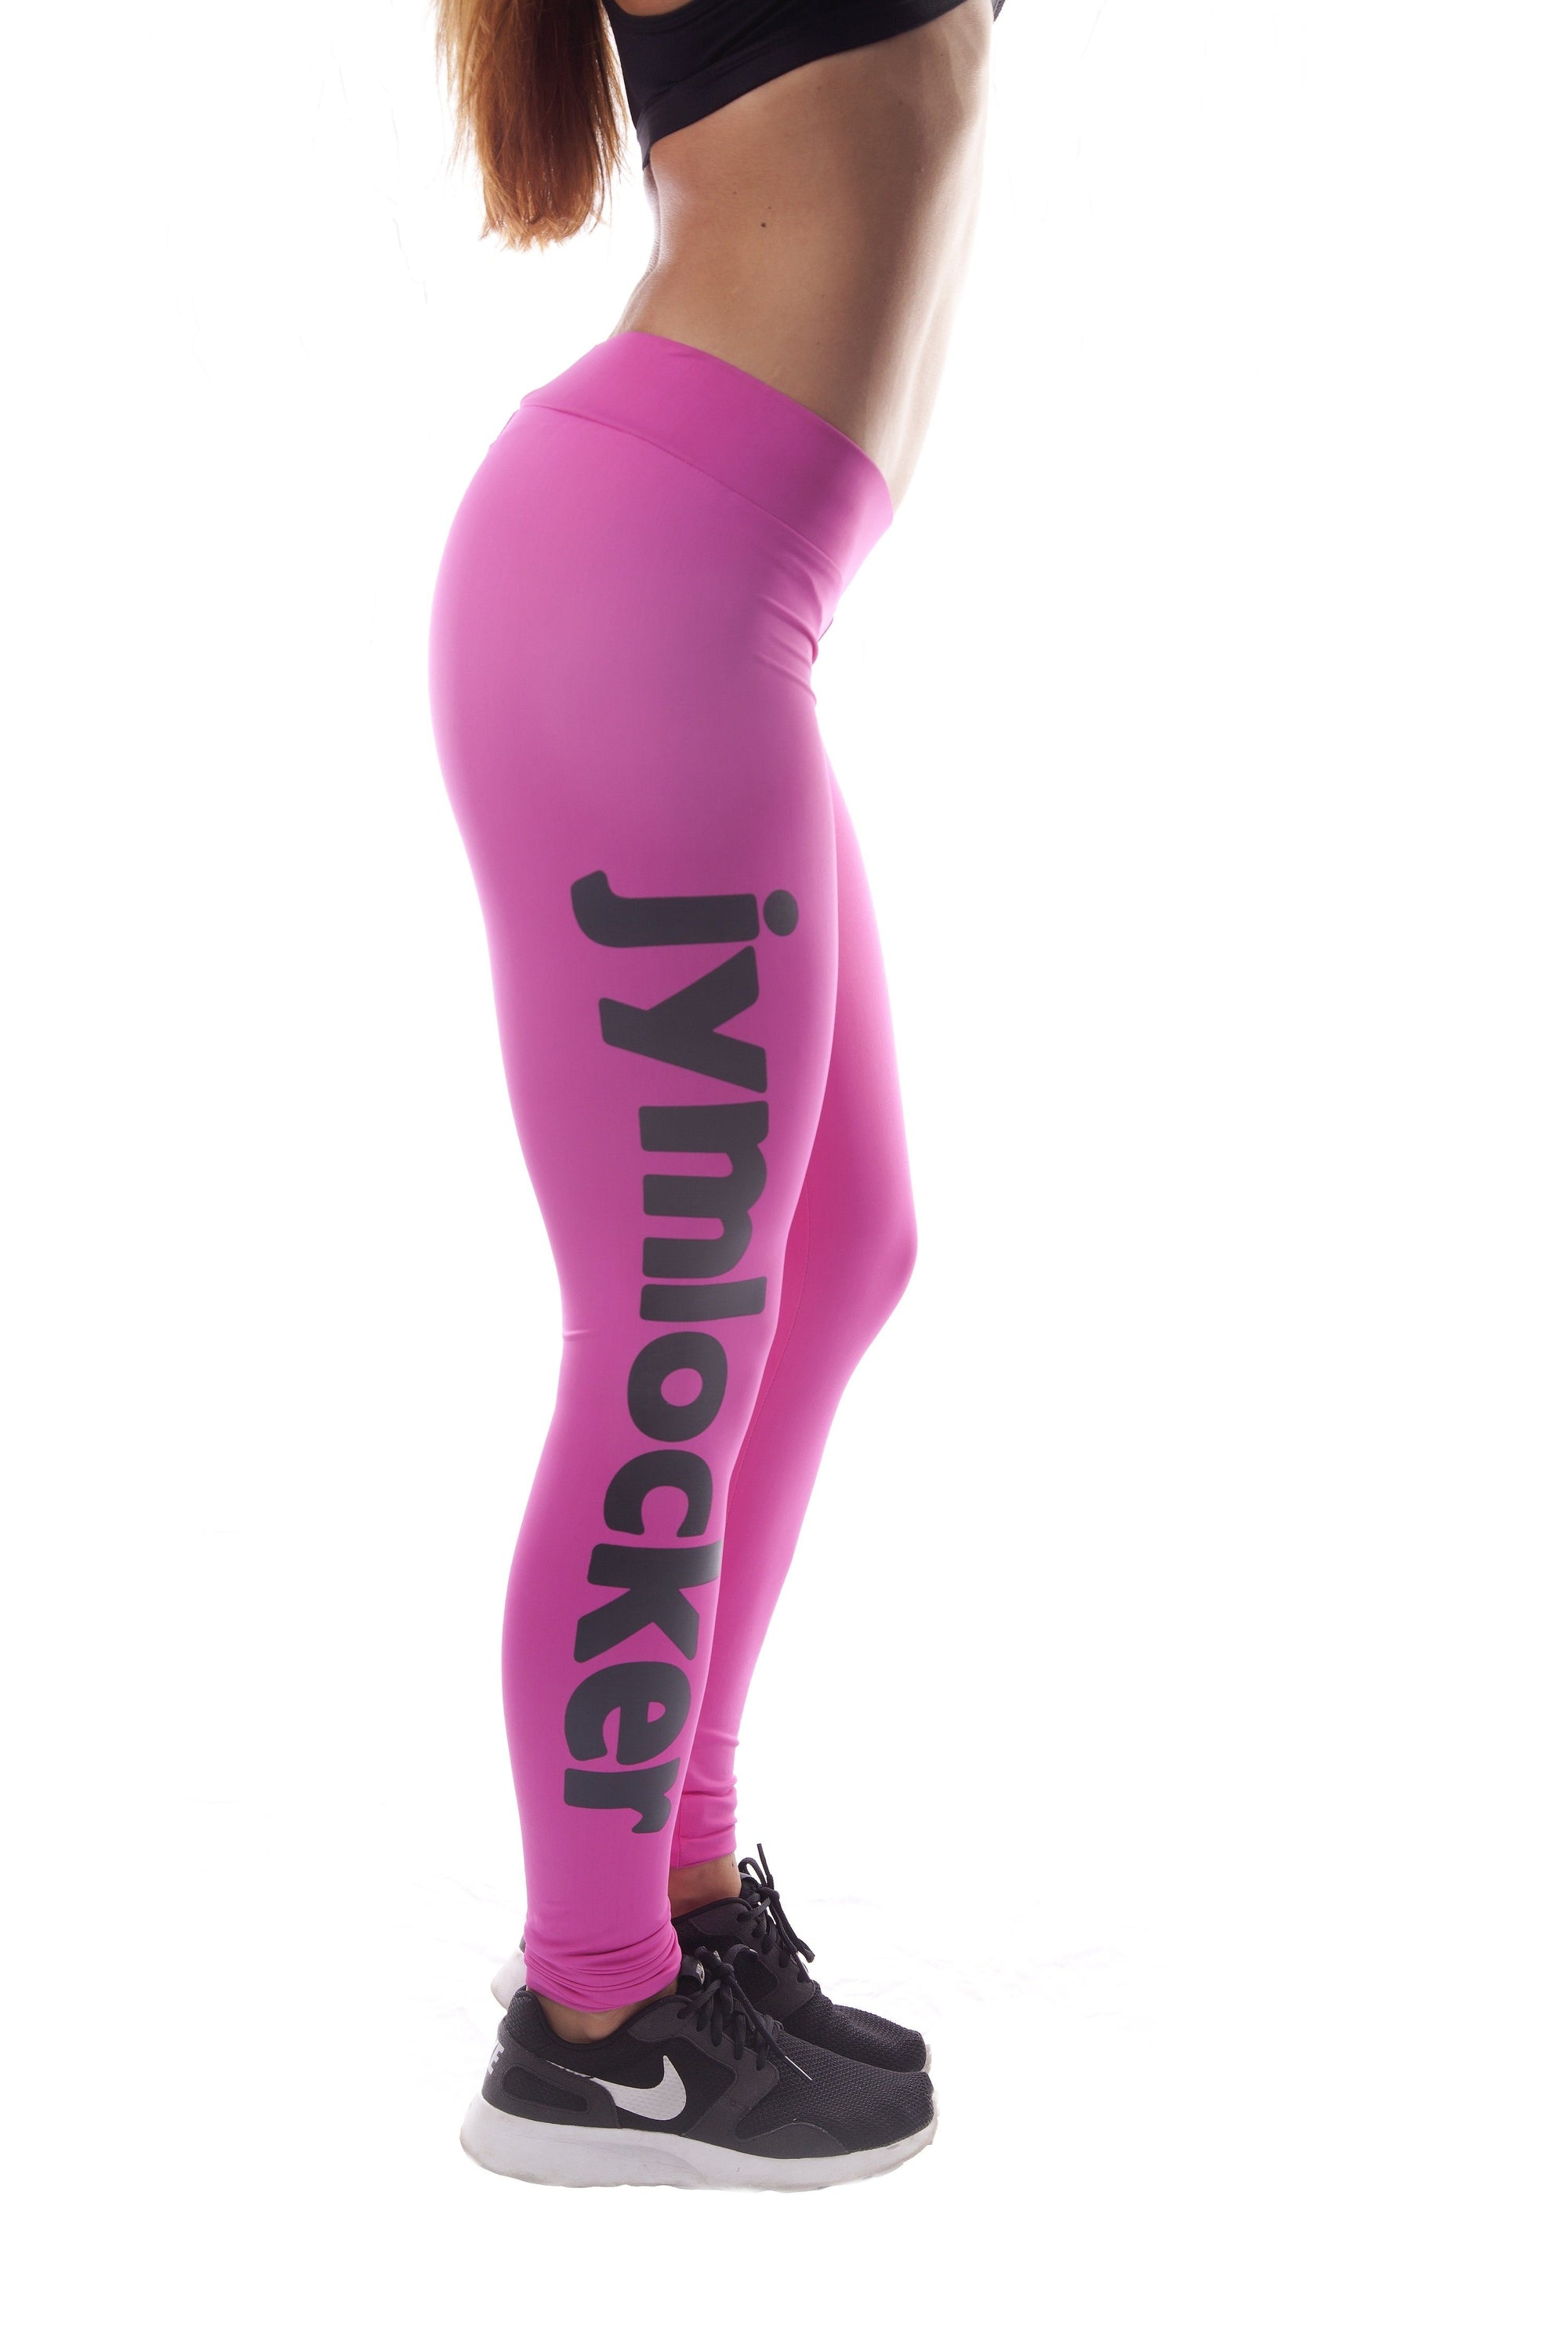 Jym Locker Ladies Full Length Compression Tights - Pink/Black